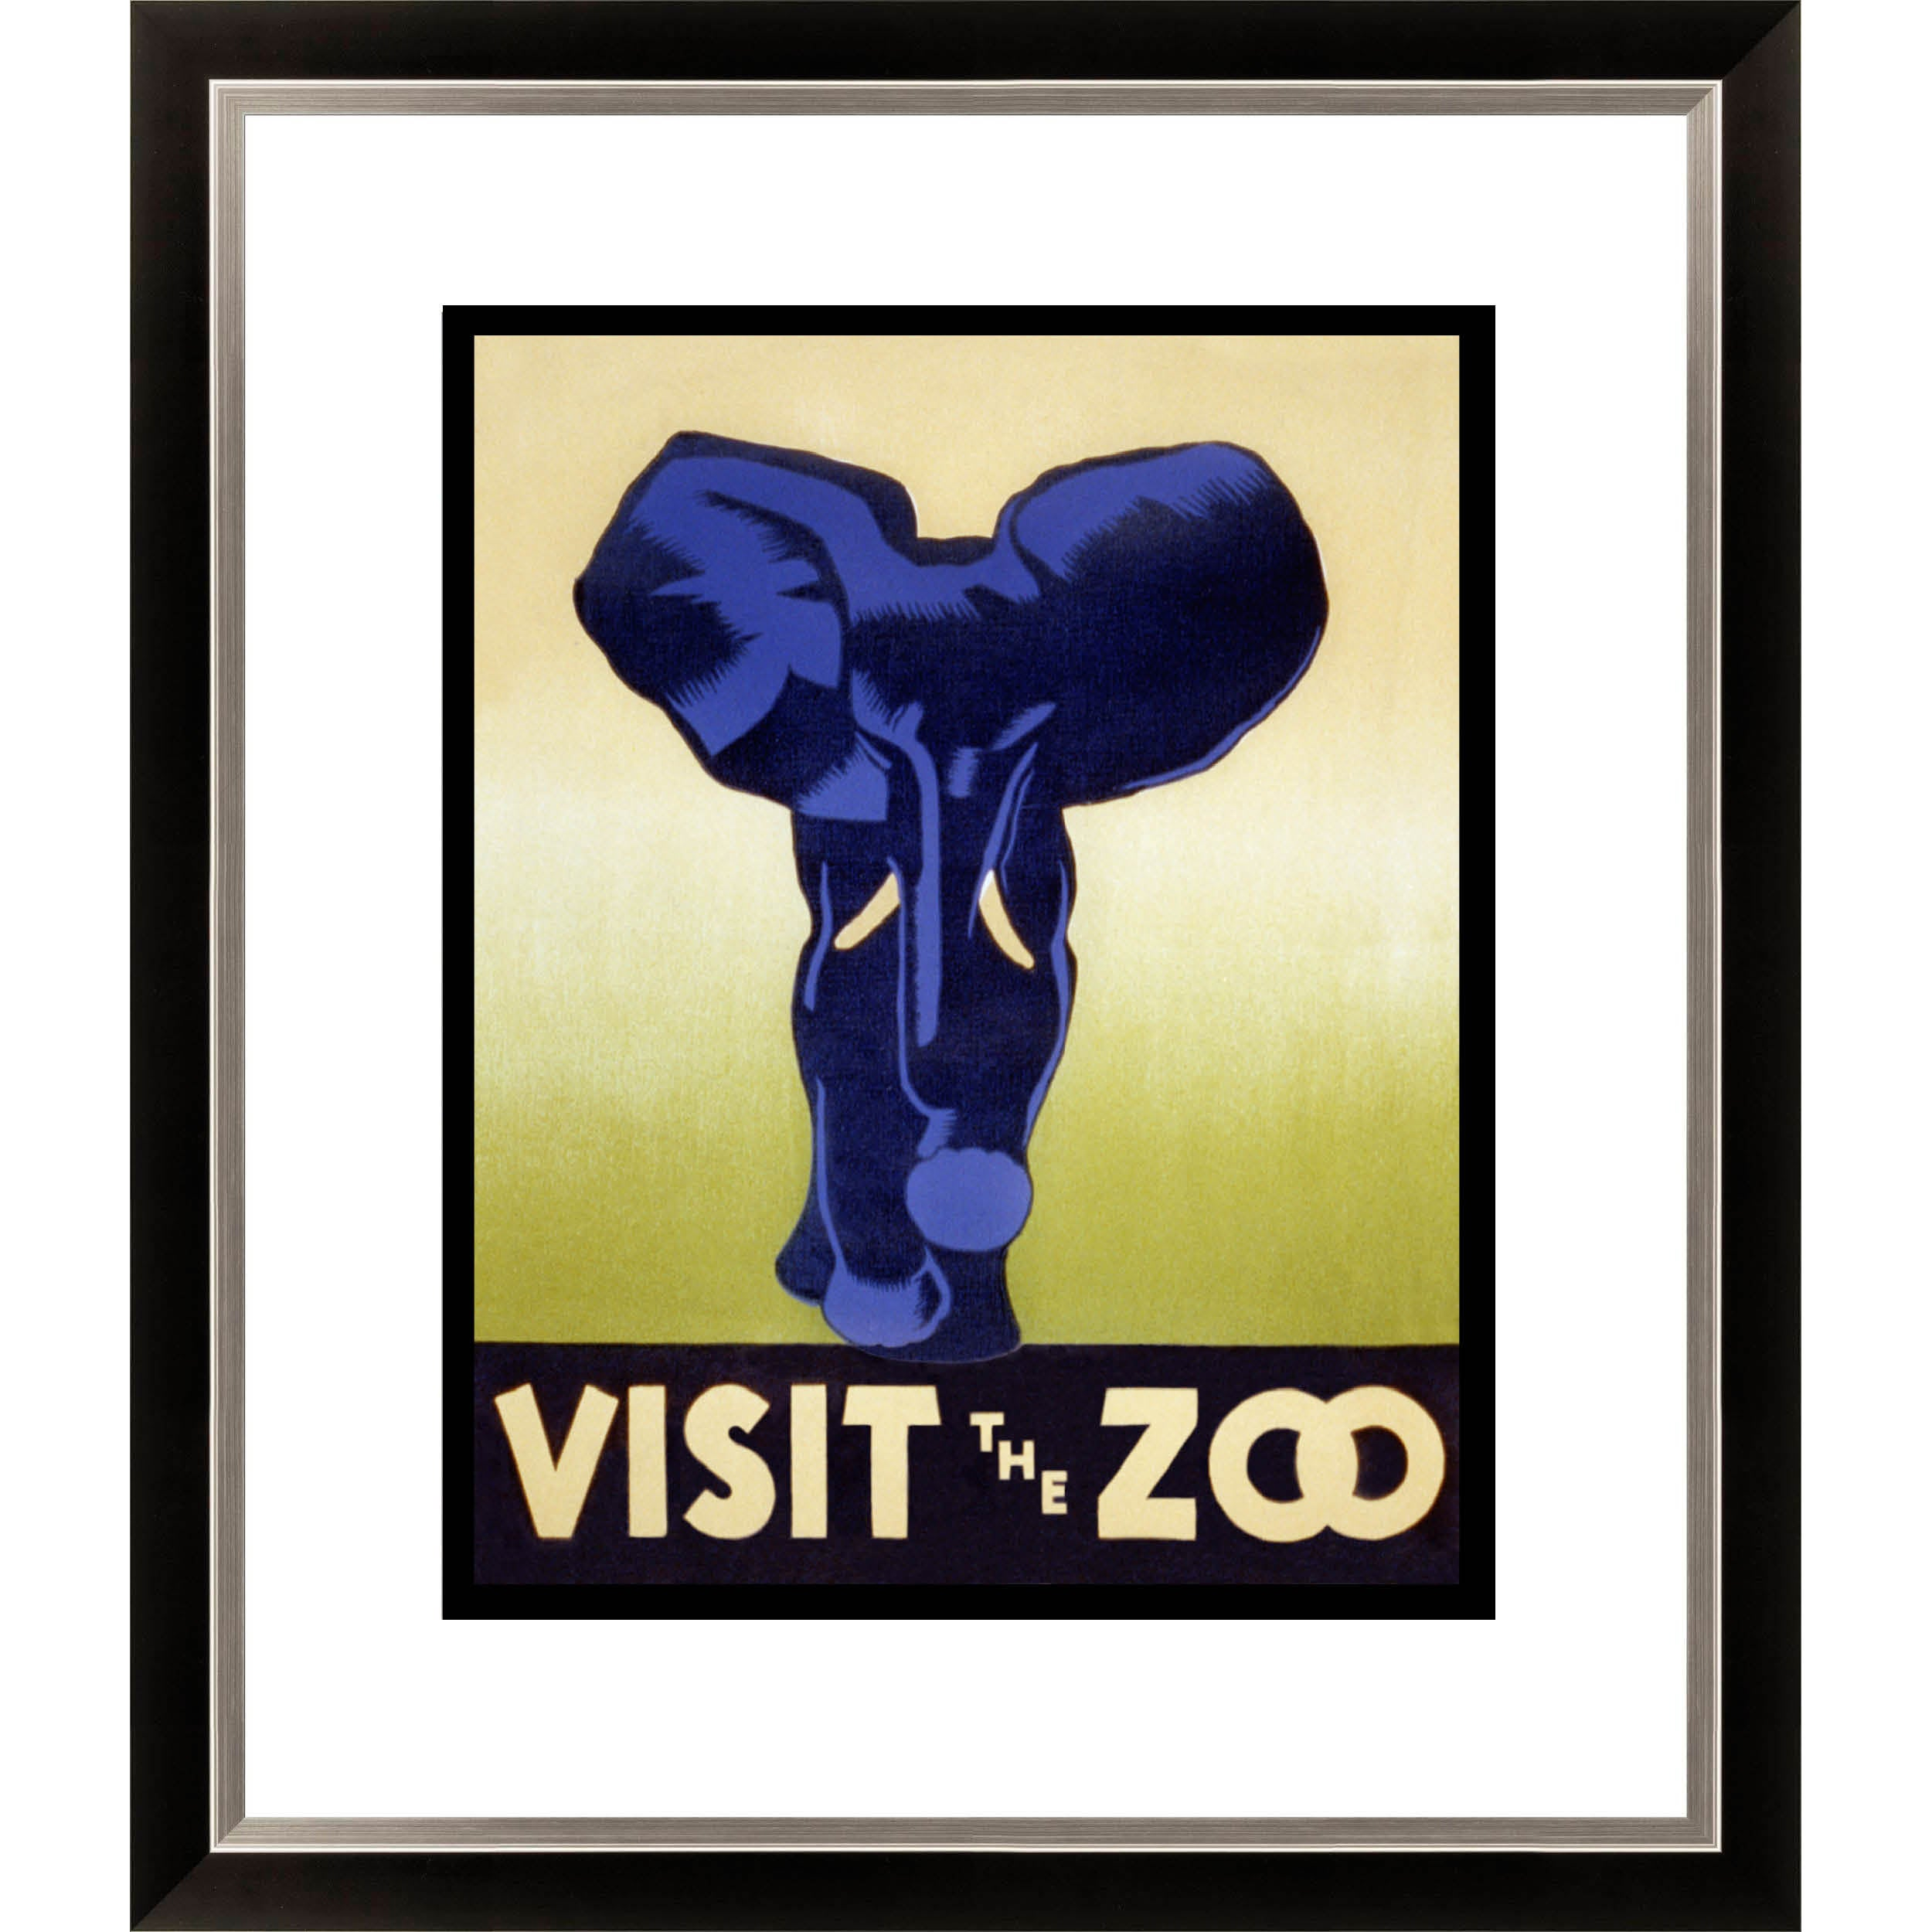 Gallery Direct 'Visit the Zoo' Framed Limited Edition Giclee